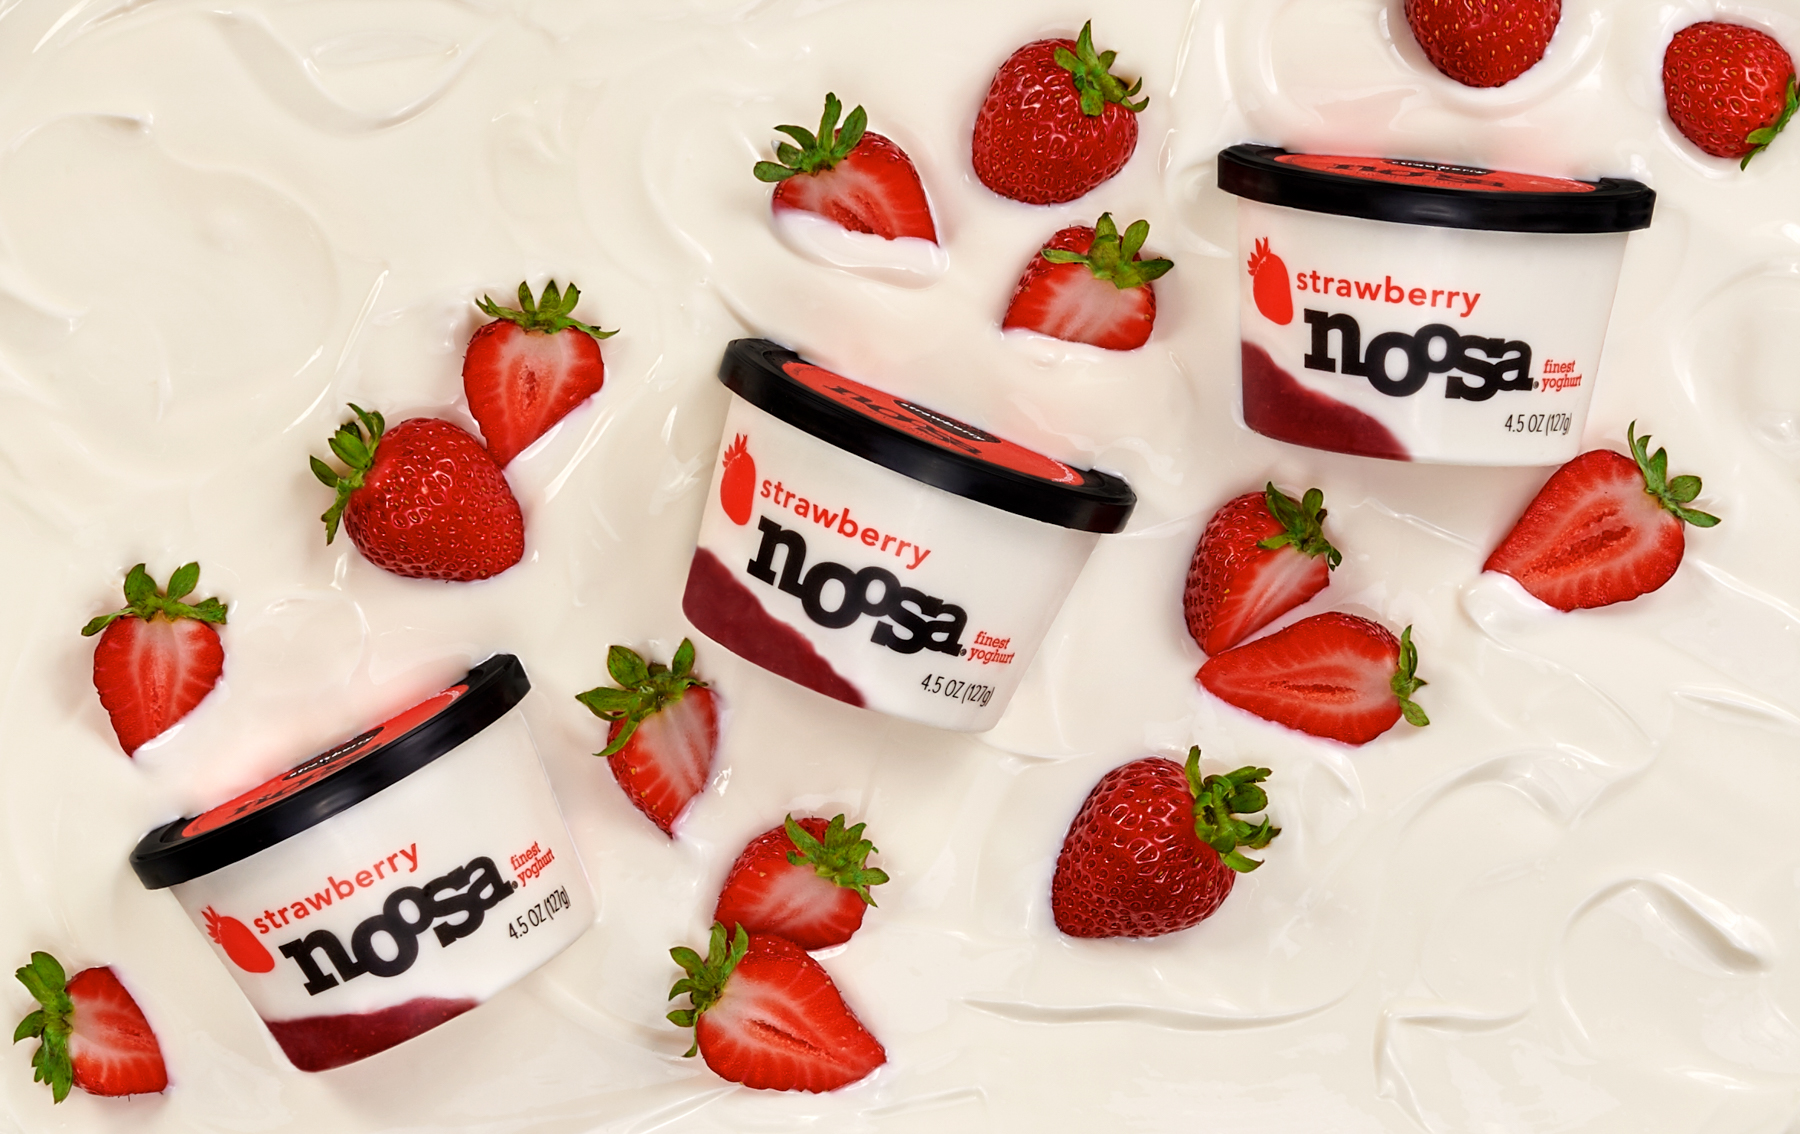 noosa_StrawberryFOB_4.5oz_Lifestyle